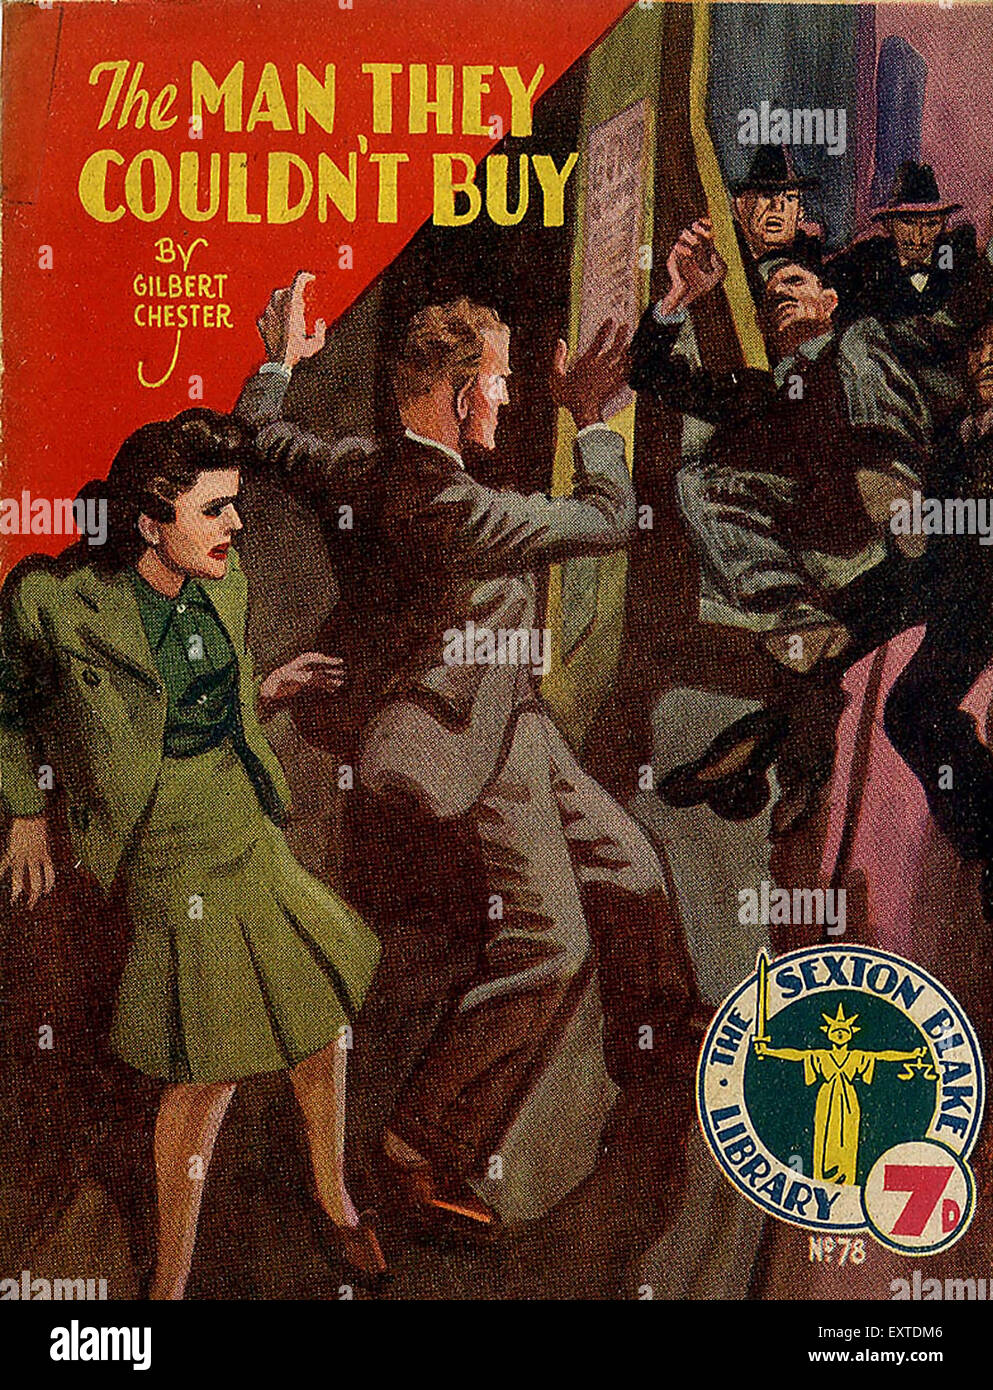 1930s UK The Man They Couldn't Buy Magazine Cover - Stock Image